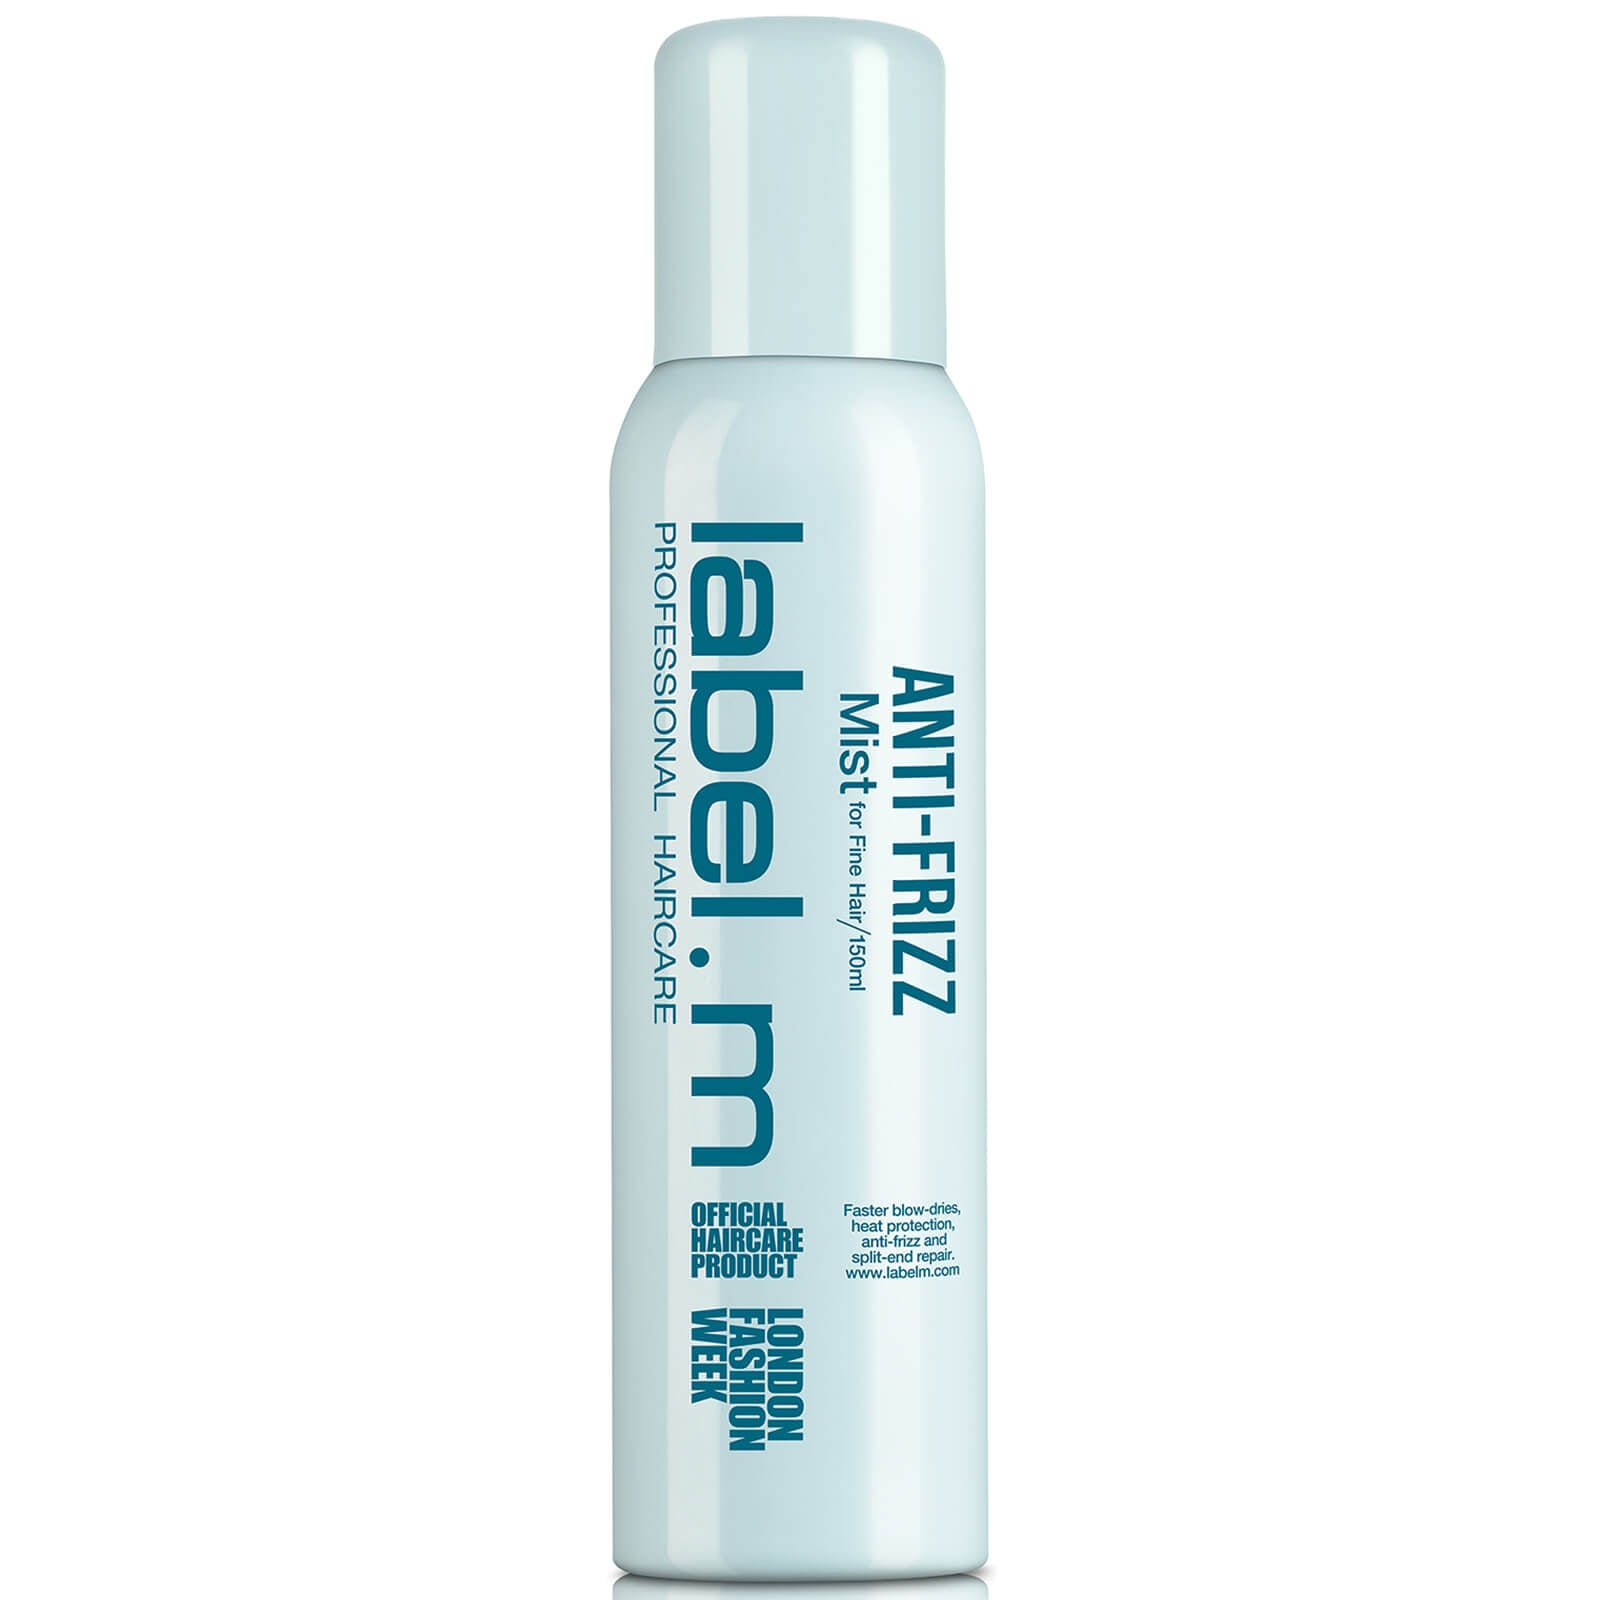 Spray termico antiencrespamiento Anti-frizz Mist Label M. 150ml. - PDEPELO